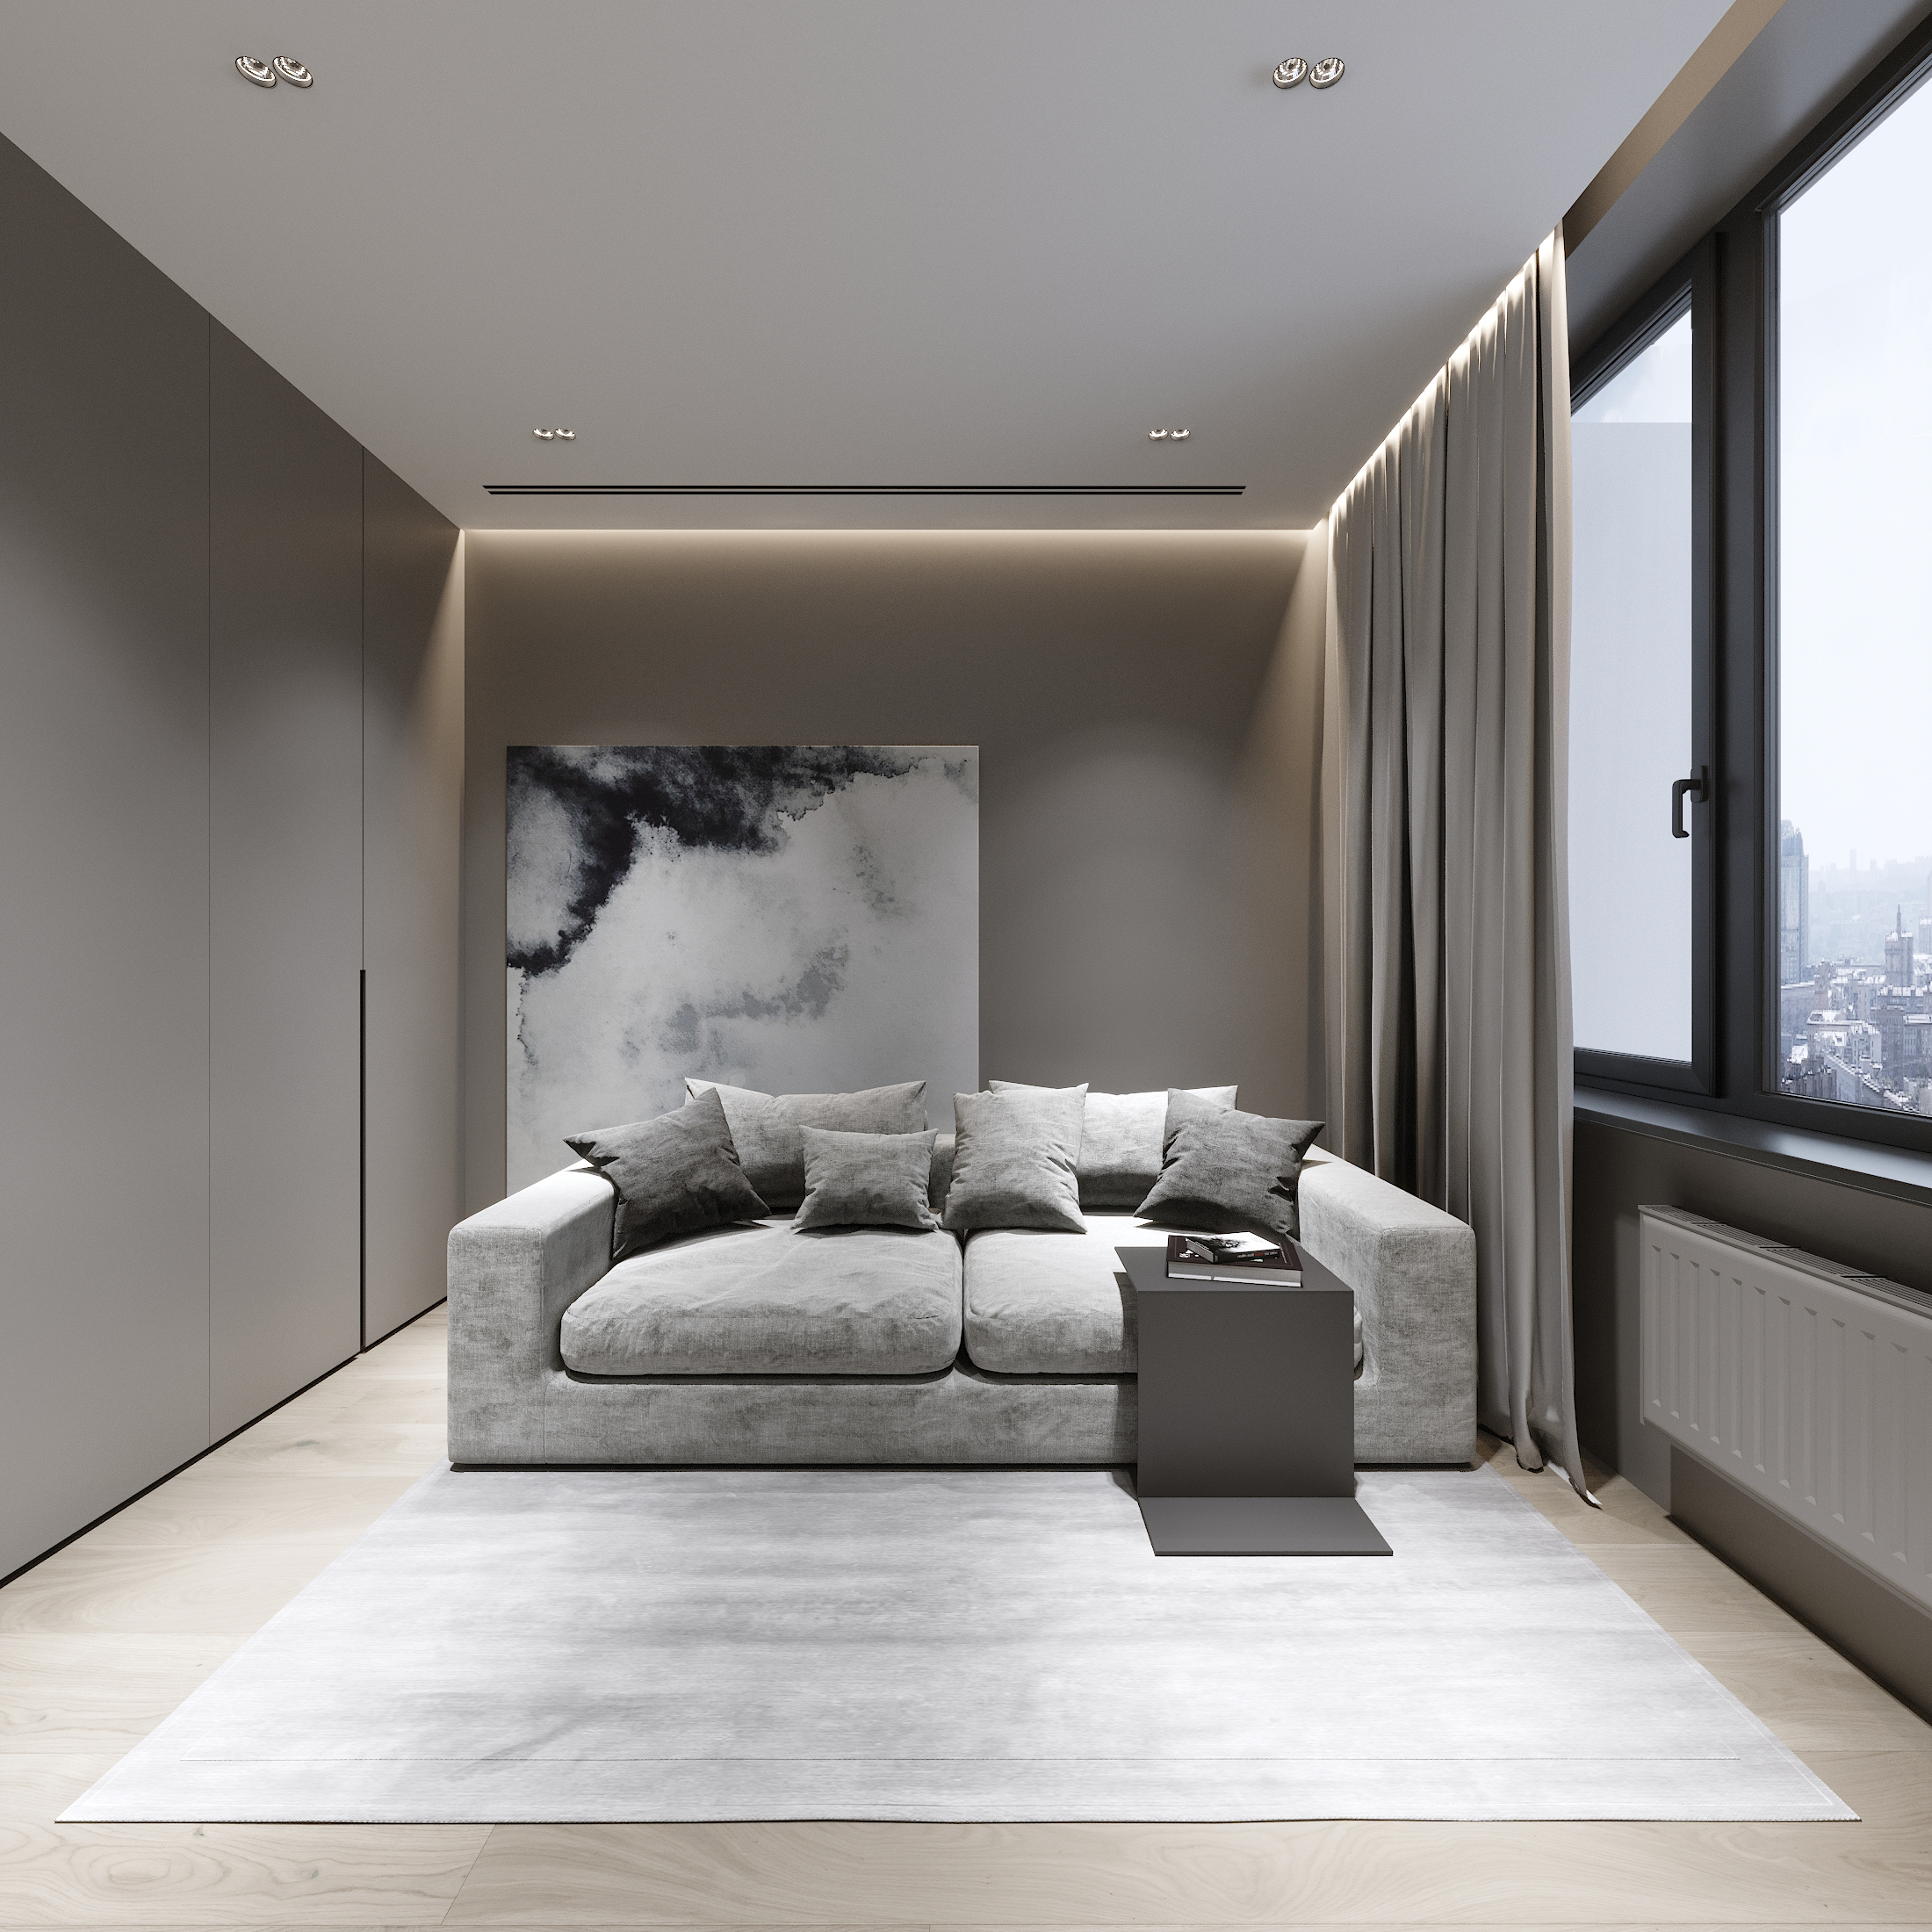 Shades of grey 1907 bedroom_3